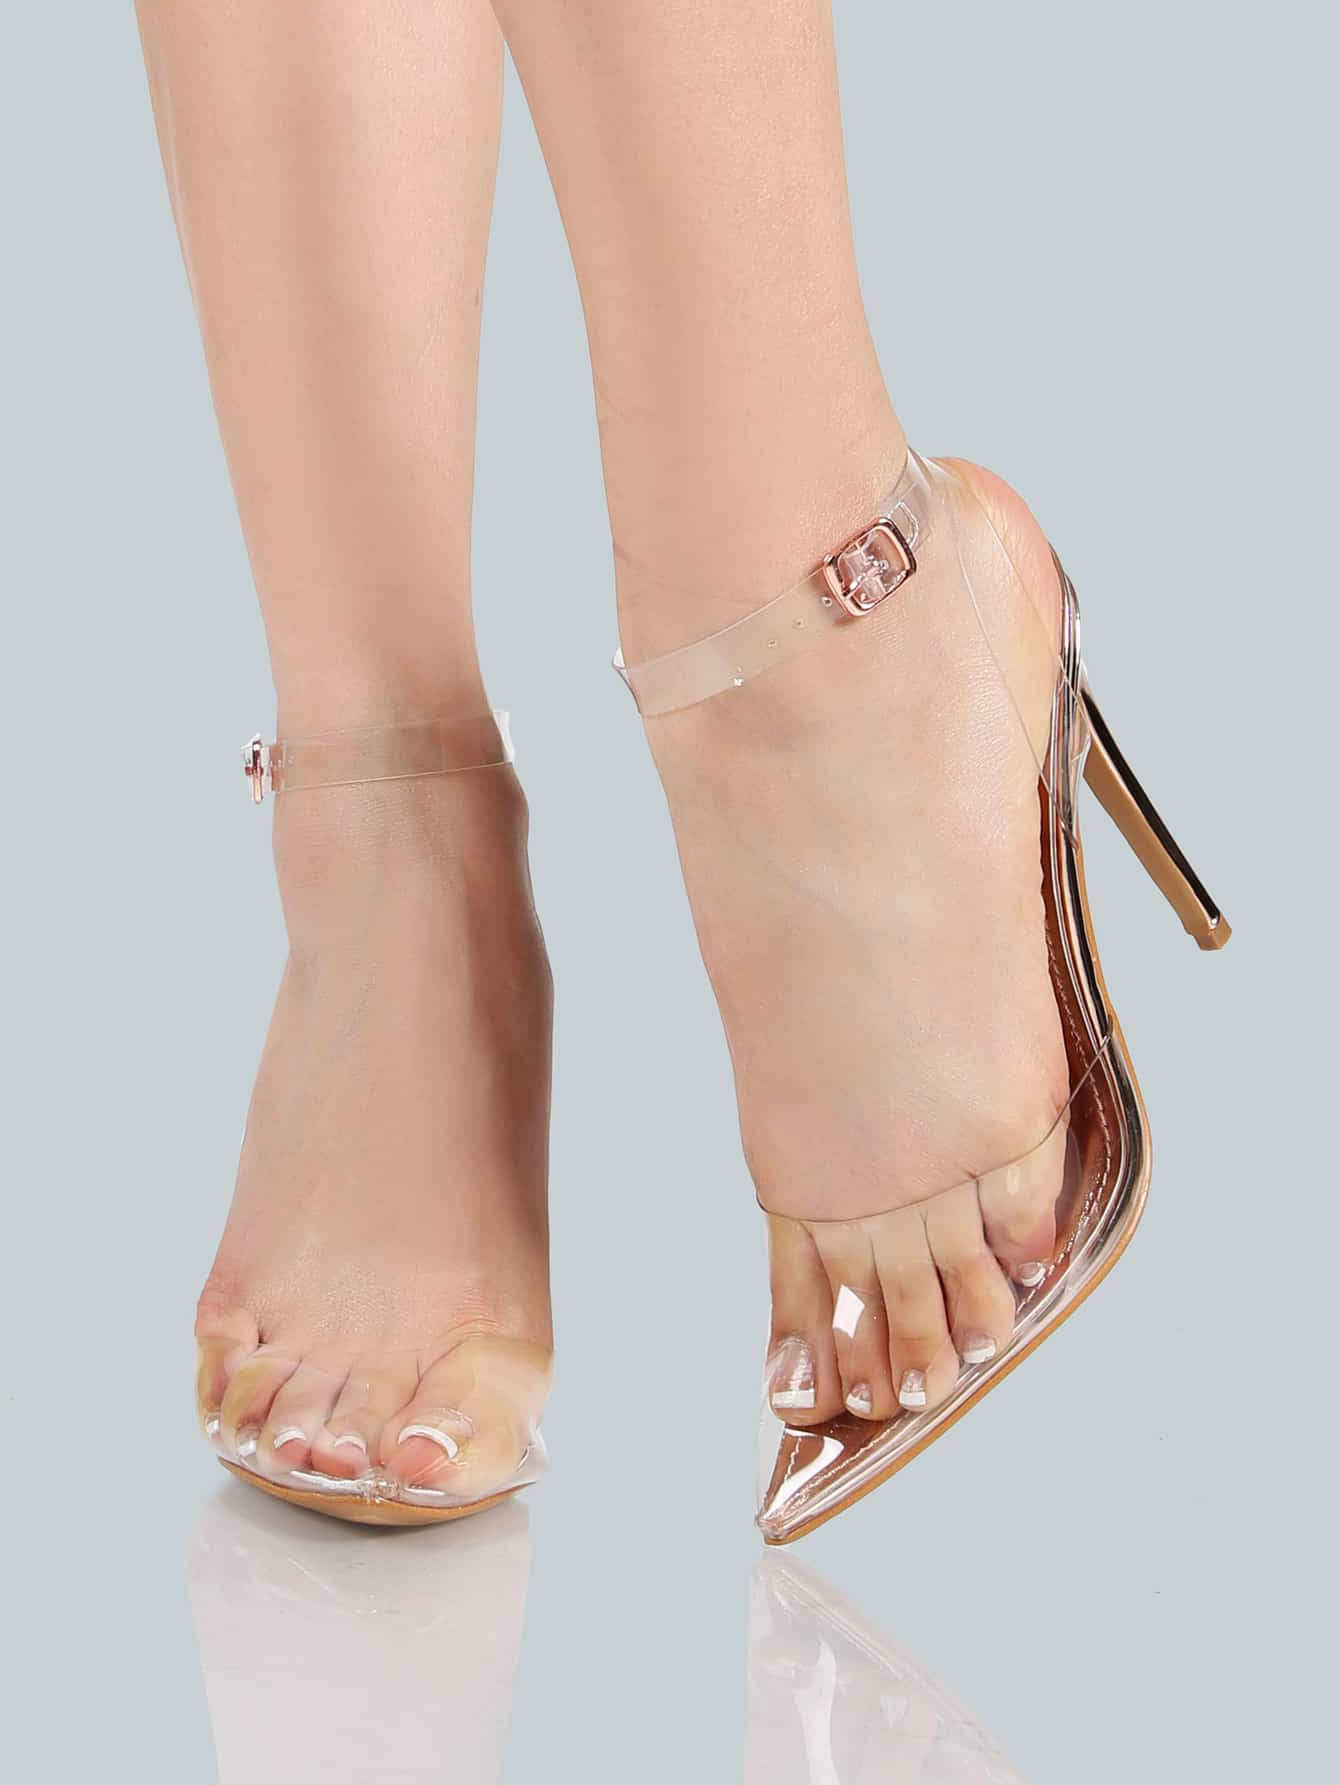 Clear Closed Toe Ankle Strap Heel ROSE GOLD SheIn Sheinside